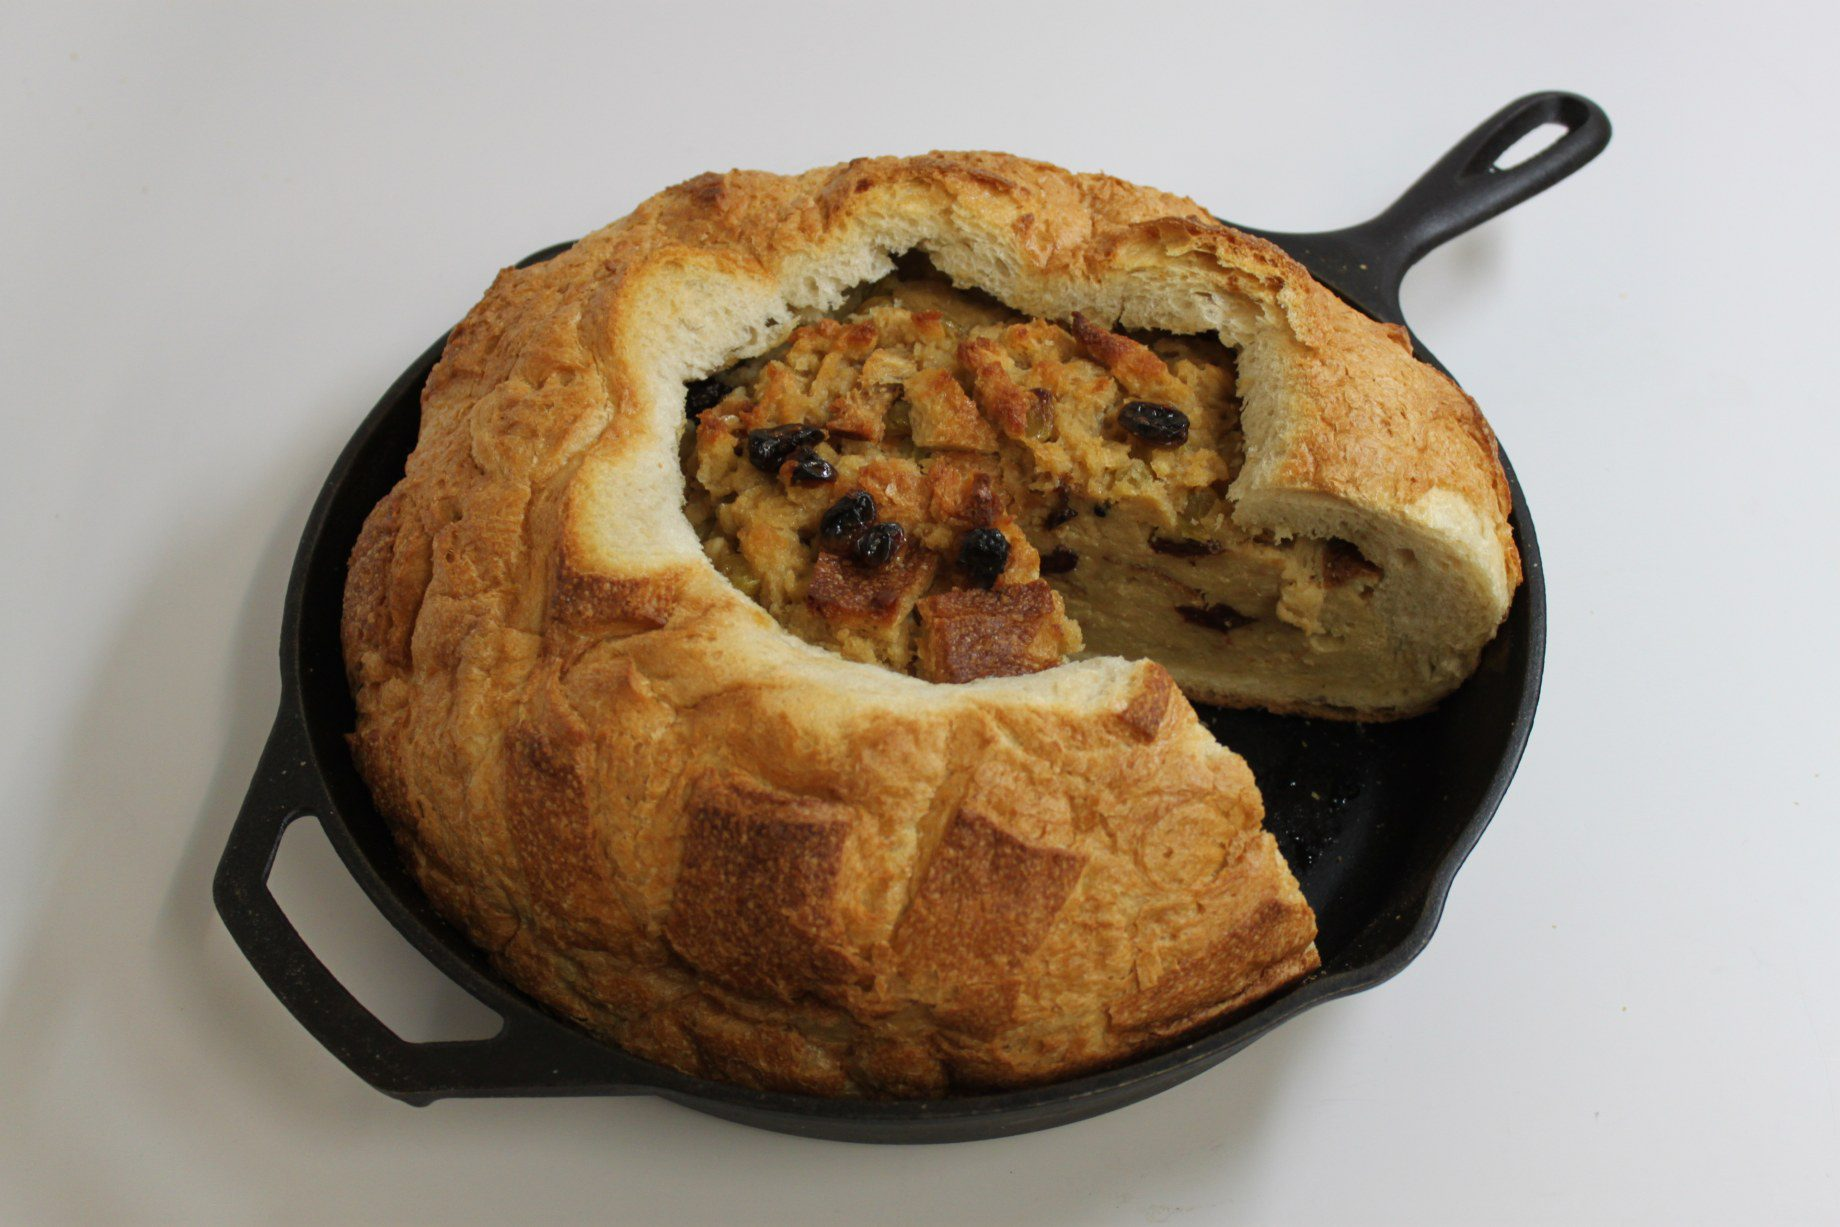 Spiced bread pudding in a cast-iron skillet on the set of Good Eats.